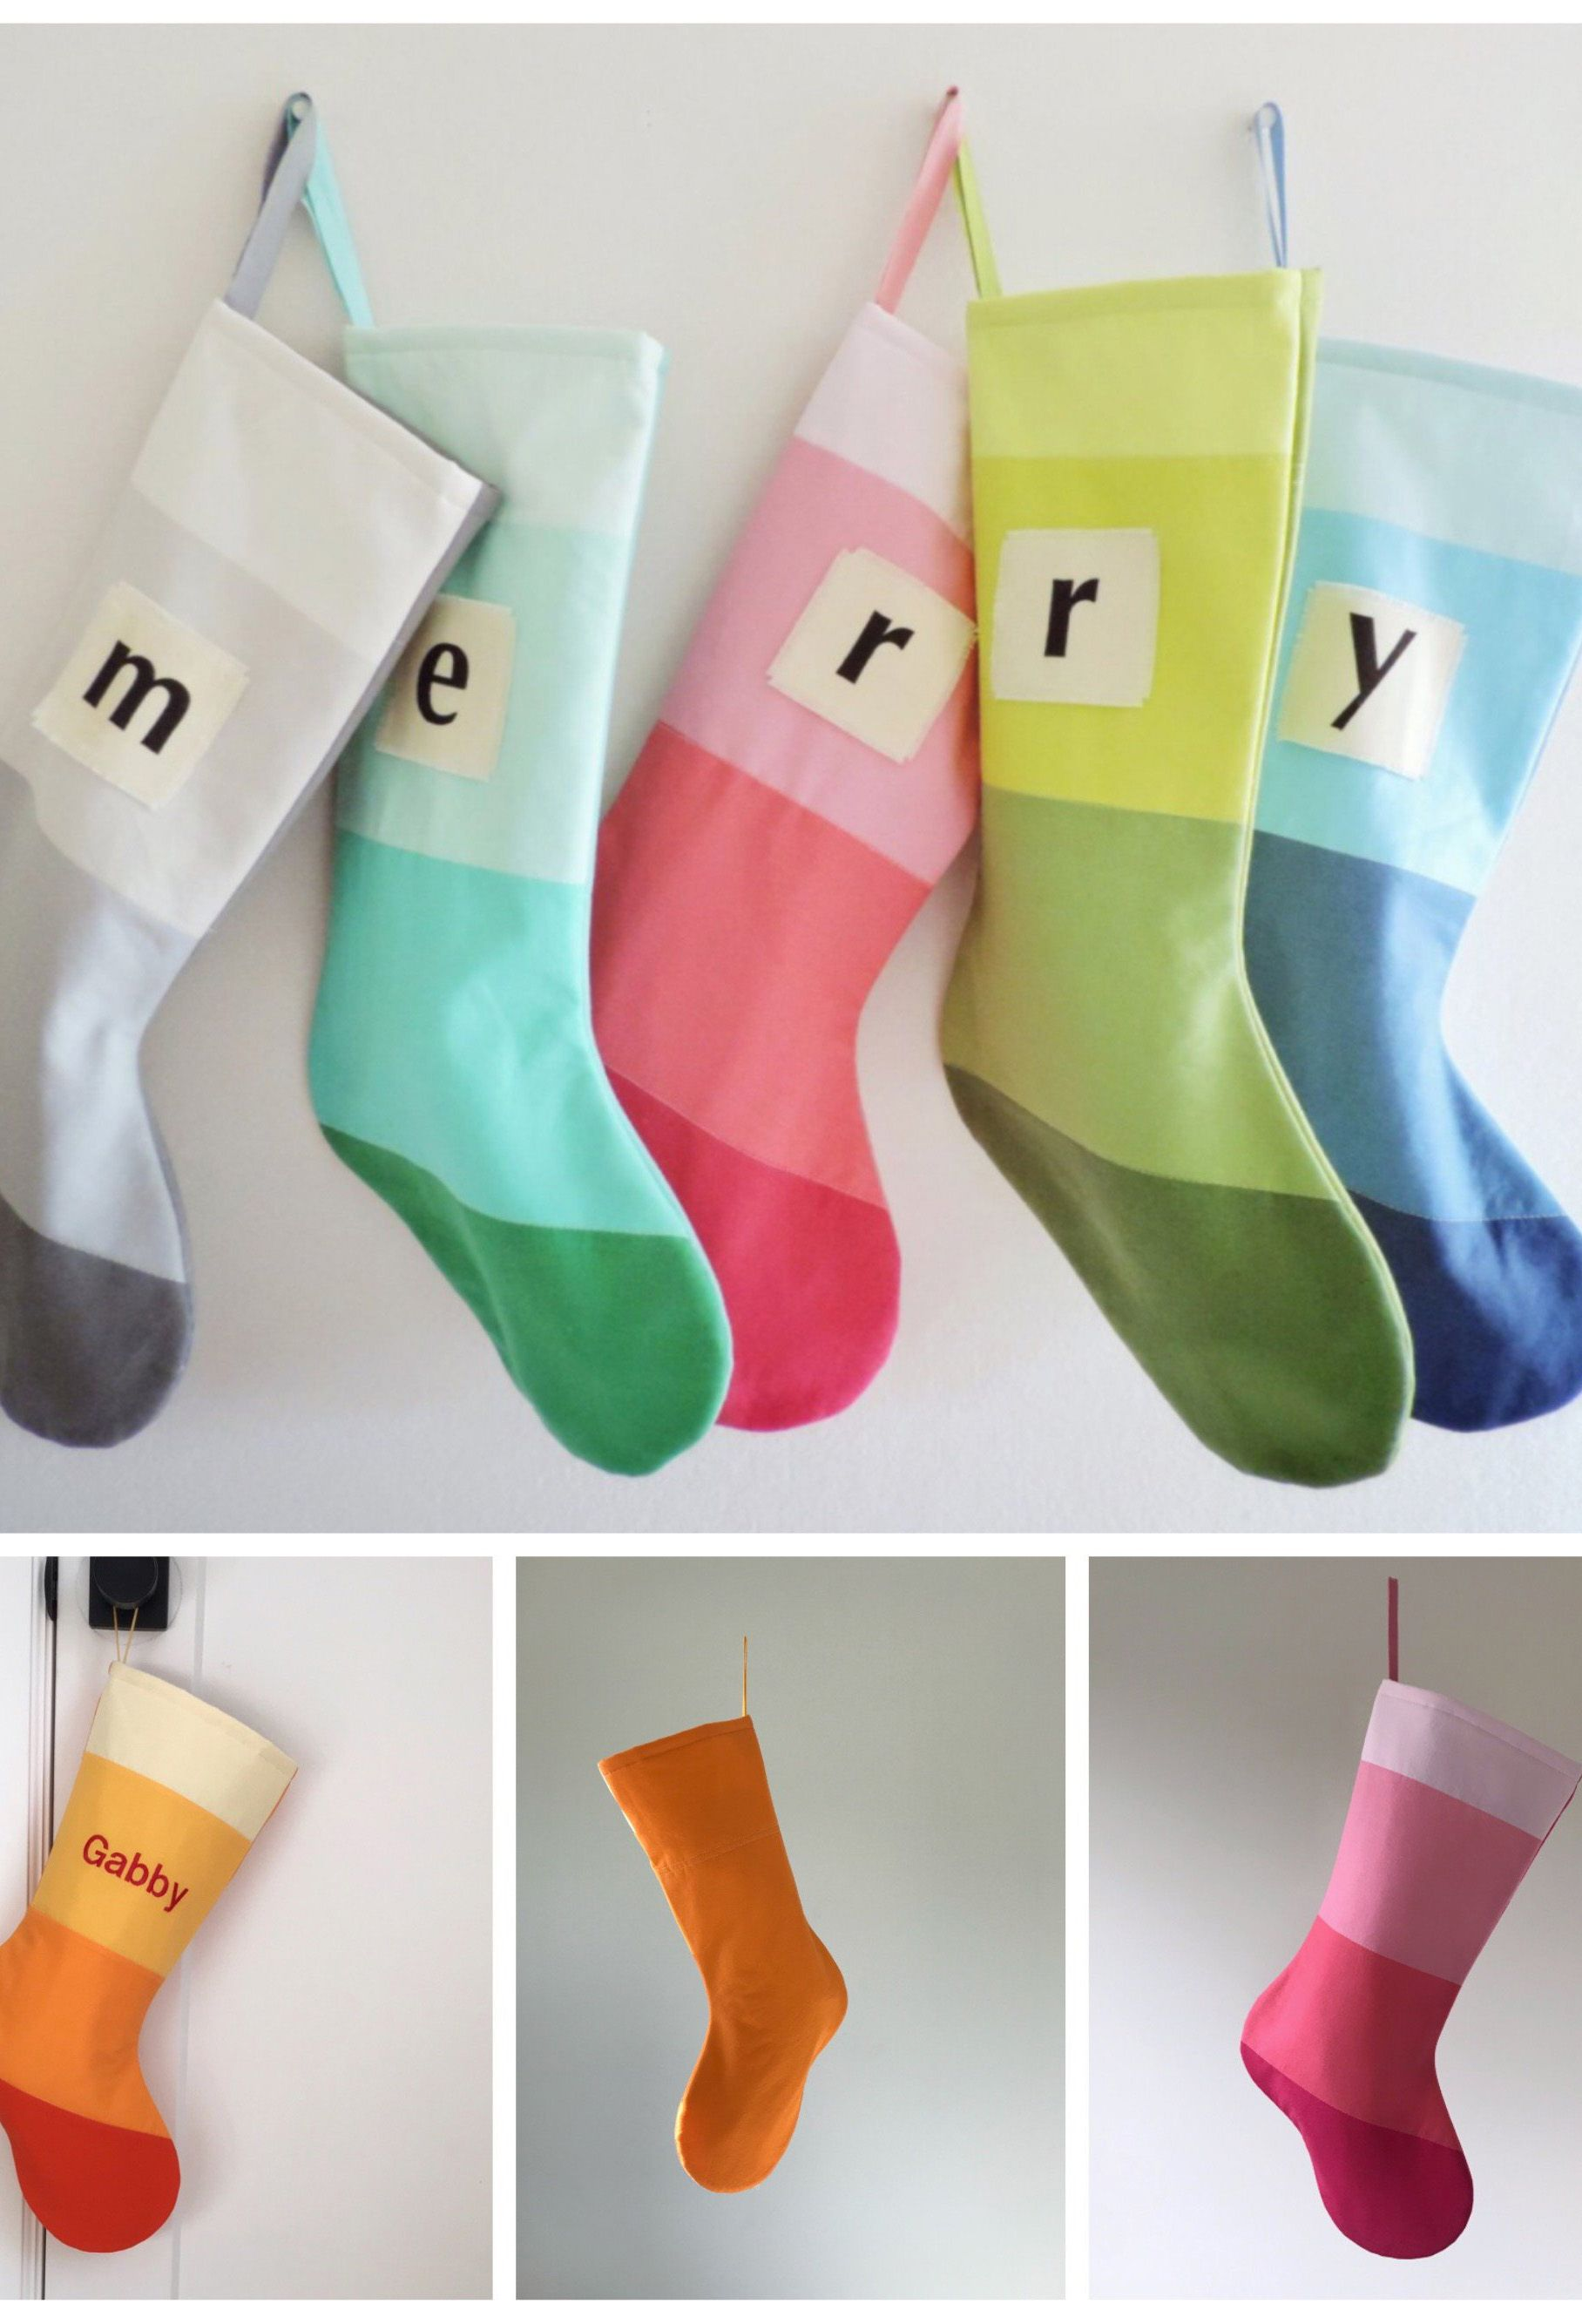 Colorblocked and personalized holiday stockings